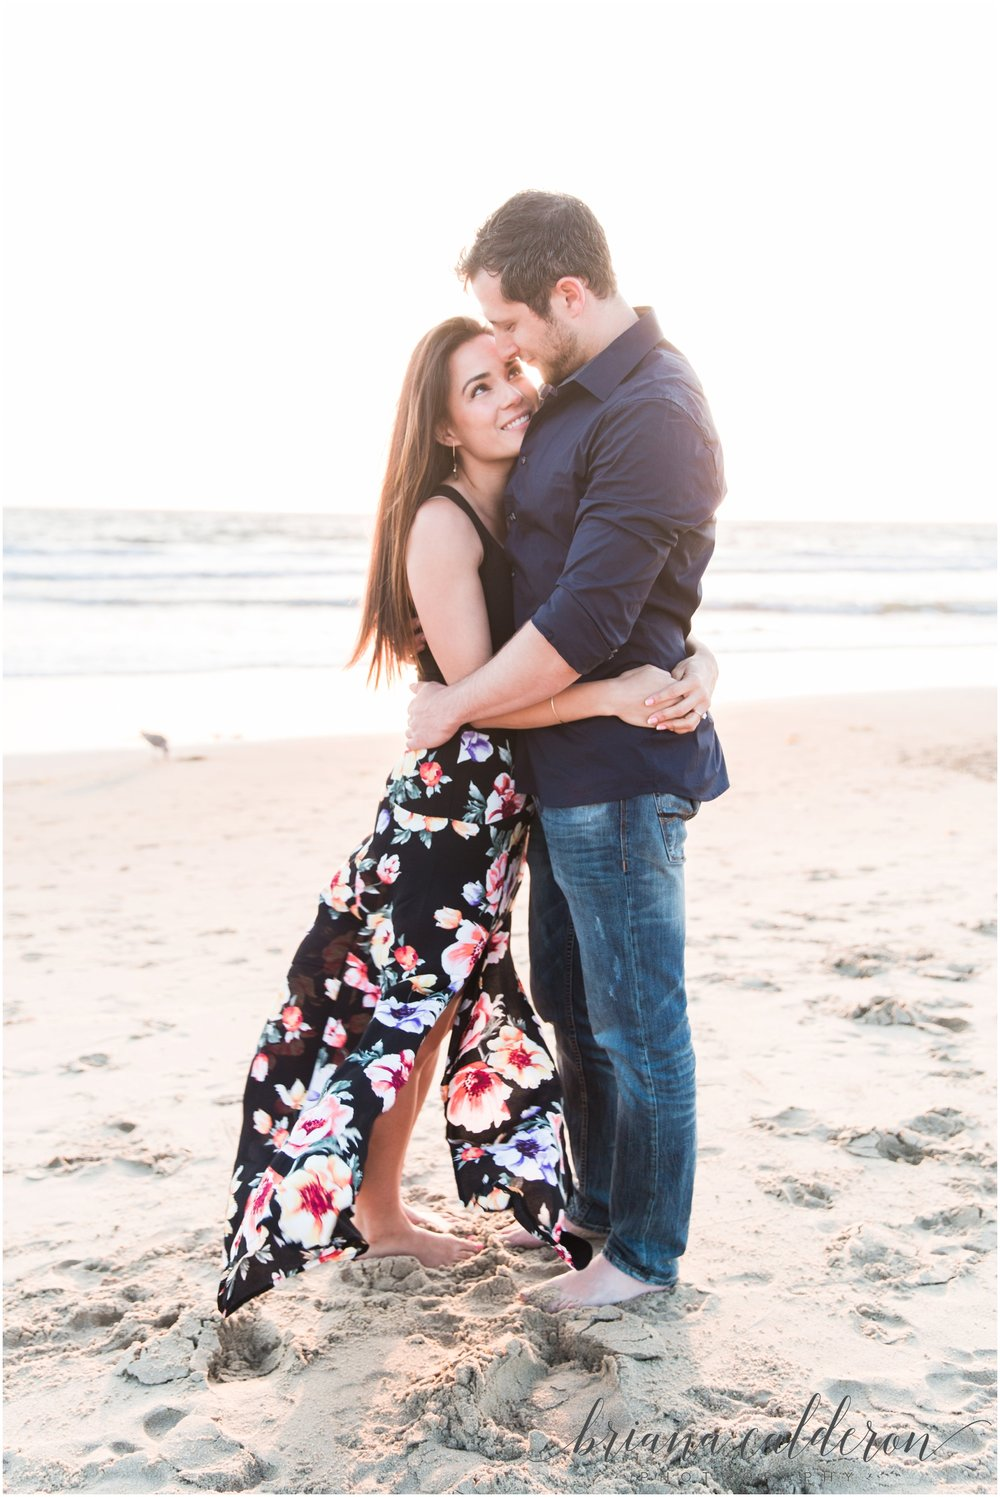 LA Beach Engagement Photos by Briana Calderon Photography_0823.jpg